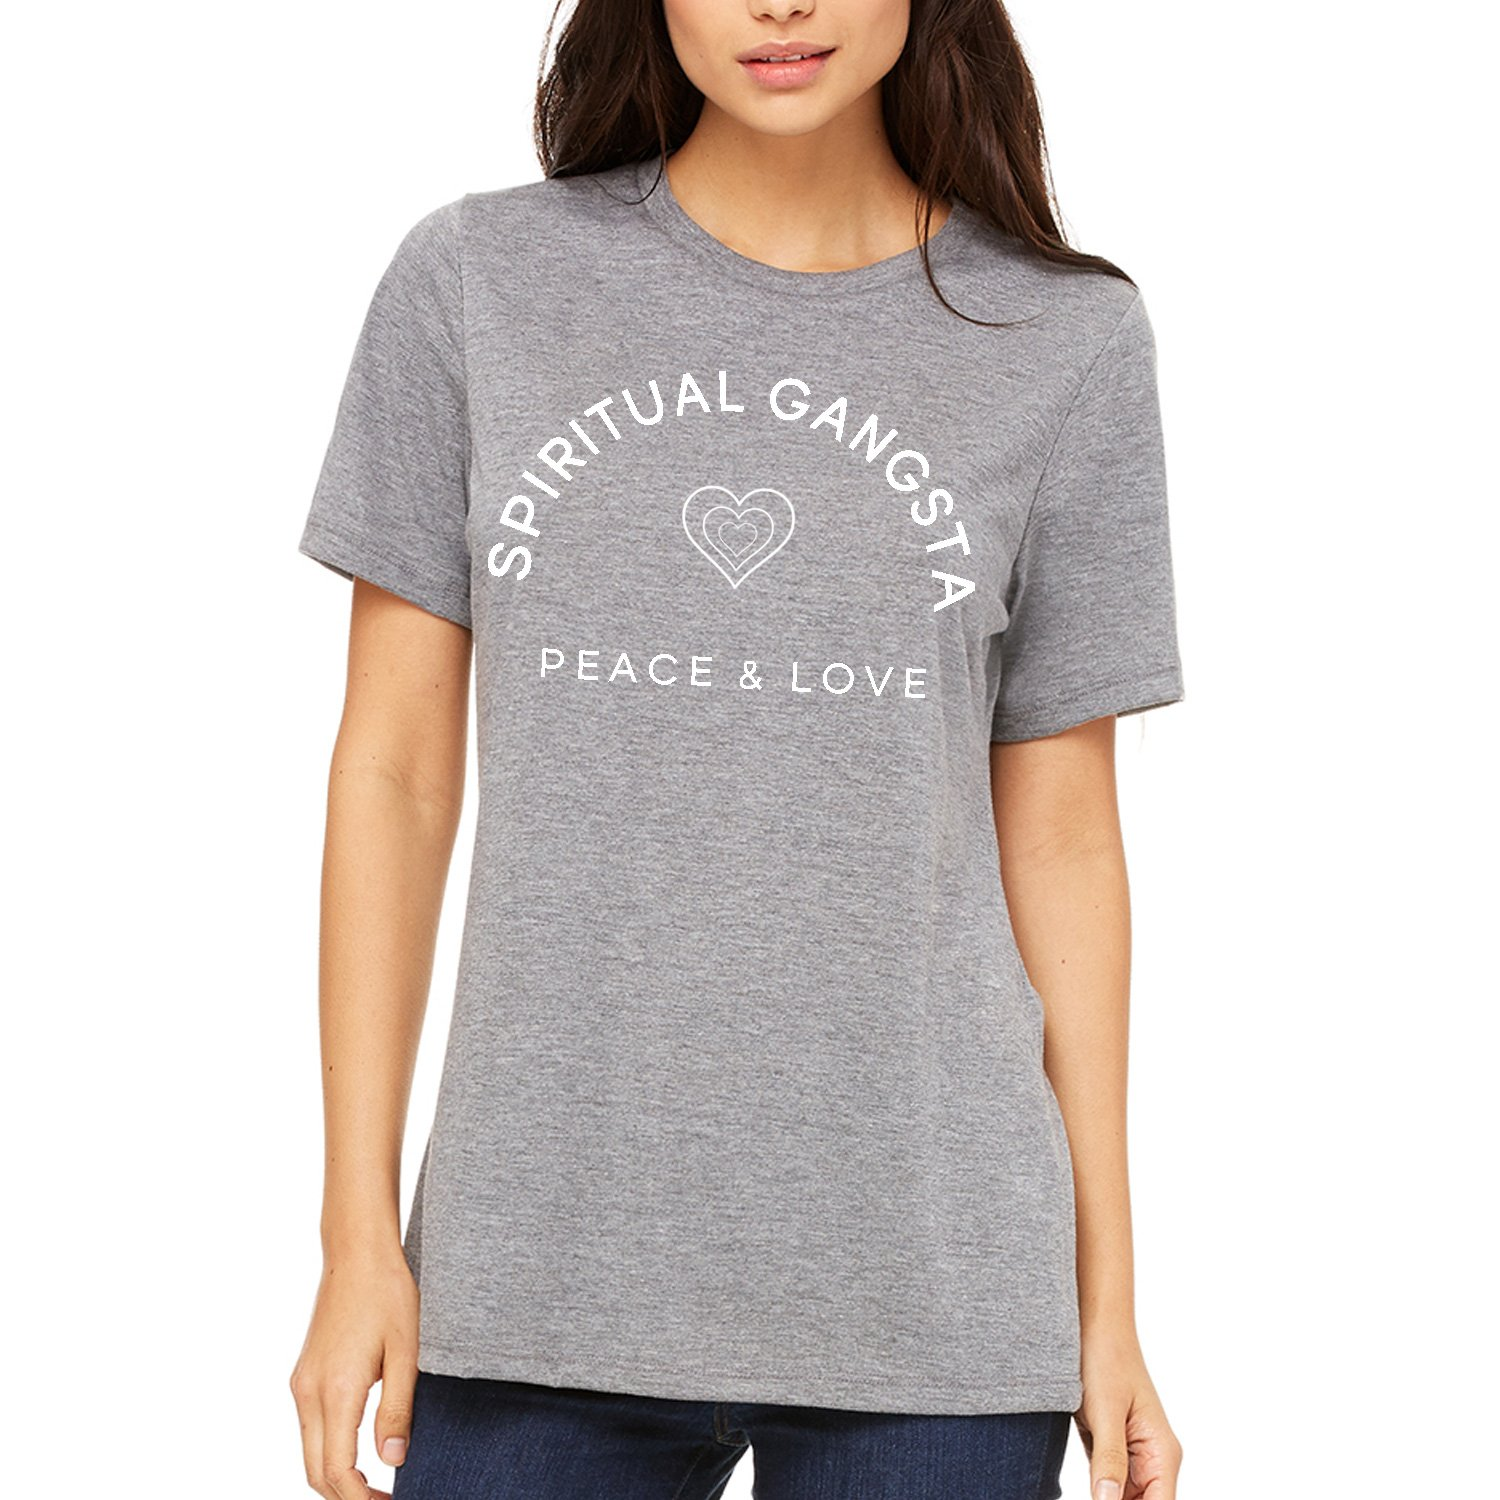 75189d78 4.2 oz. Heathers are 90% Combed Ring Spun Cotton and 10% Ring Spun Poly  Classic Fashion Forward Relaxed Boyfriend Tee Fit & Cut For Comfort and  Style